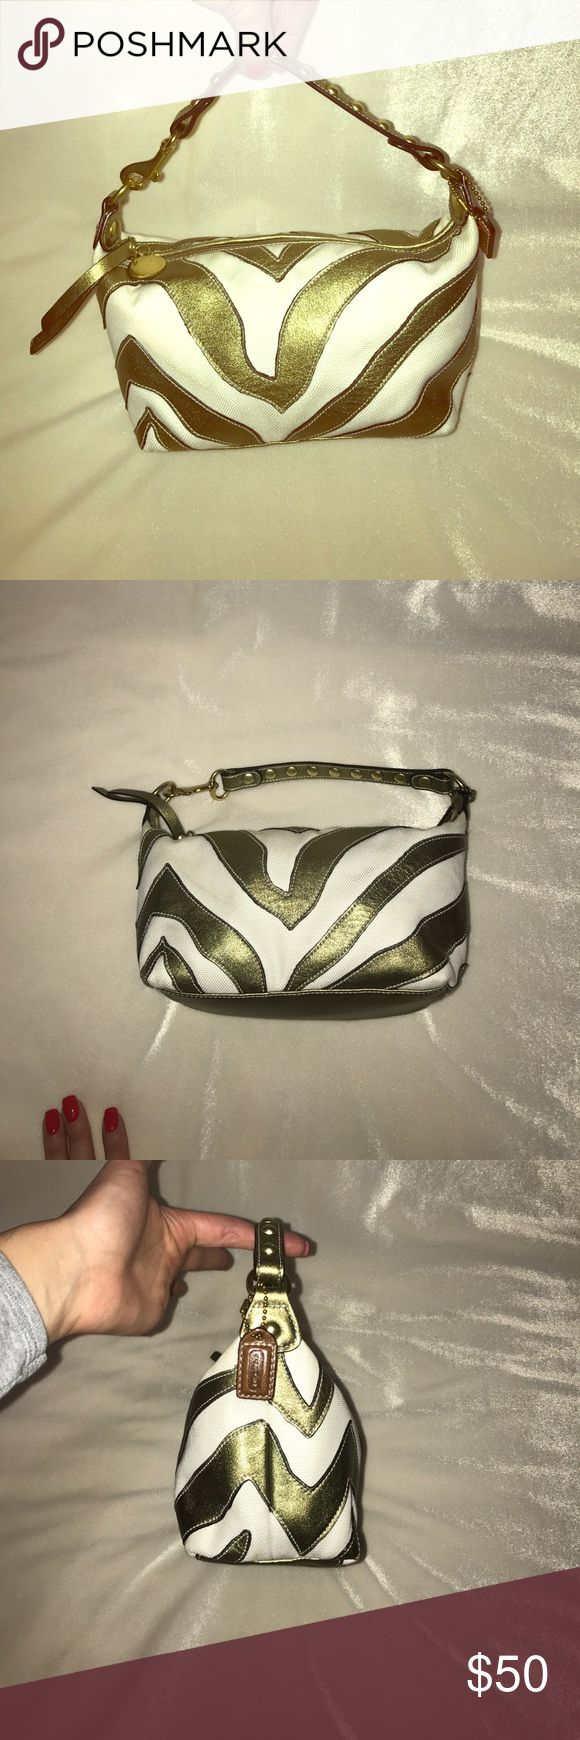 """COACH HANDBAG Gorgeous Coach hand bag. Colors are metallic gold and white. Strap has golden studs all over. Measurements are as follows 7"""" long 4.5 height 4 wide and strap hangs about 5.5"""" perfect colors for any outfit!! Slightly worn. Coach Bags Mini Bags"""